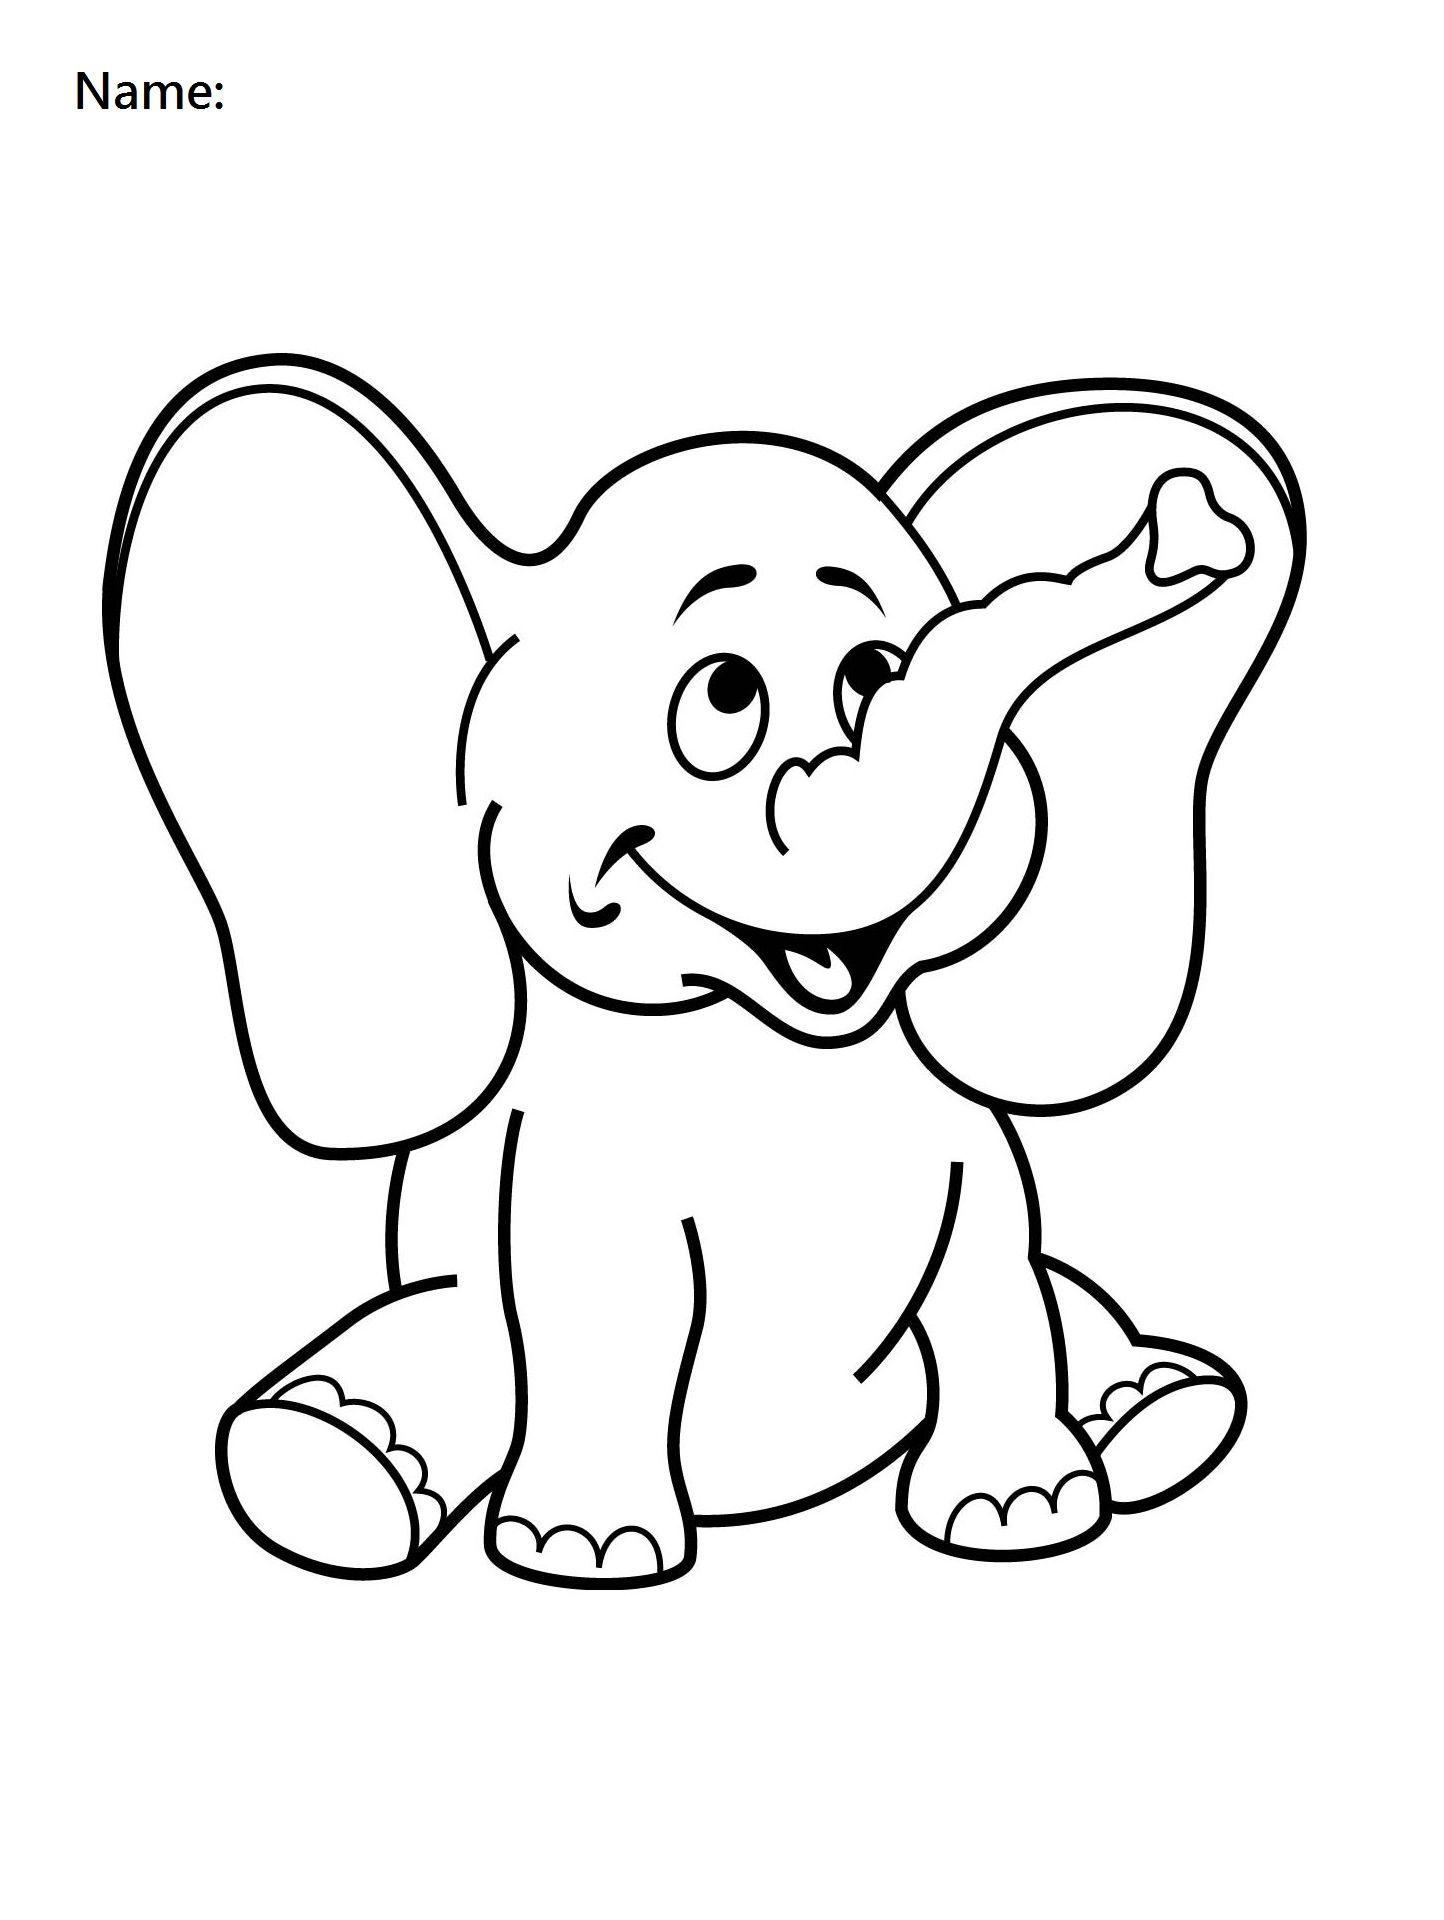 printable colouring pages for 2 year olds 4 year old worksheets printable 3 year old activities for printable year olds 2 colouring pages